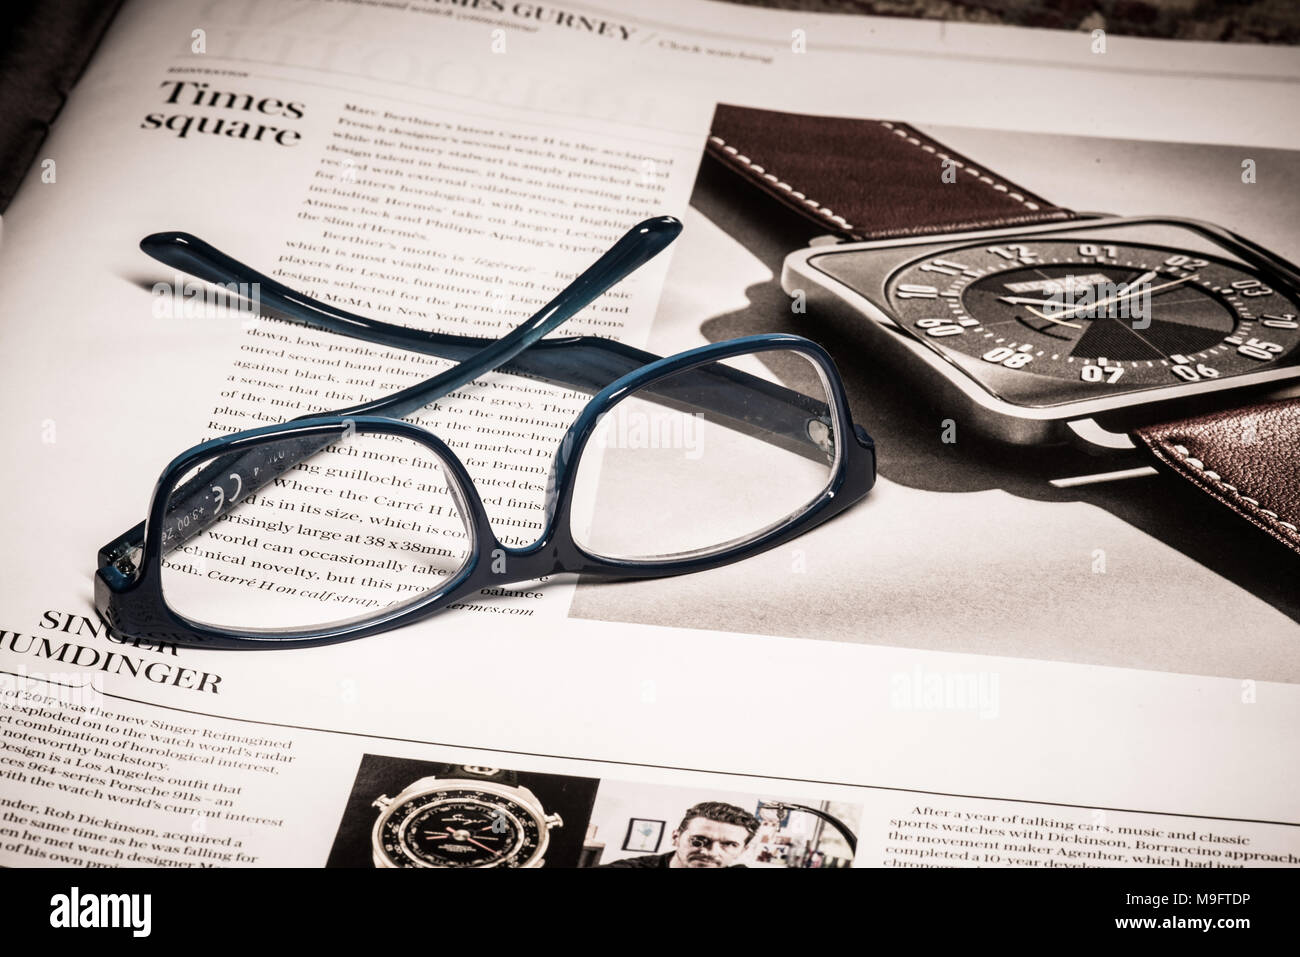 Reading glasses placed on financial newspaper - Stock Image